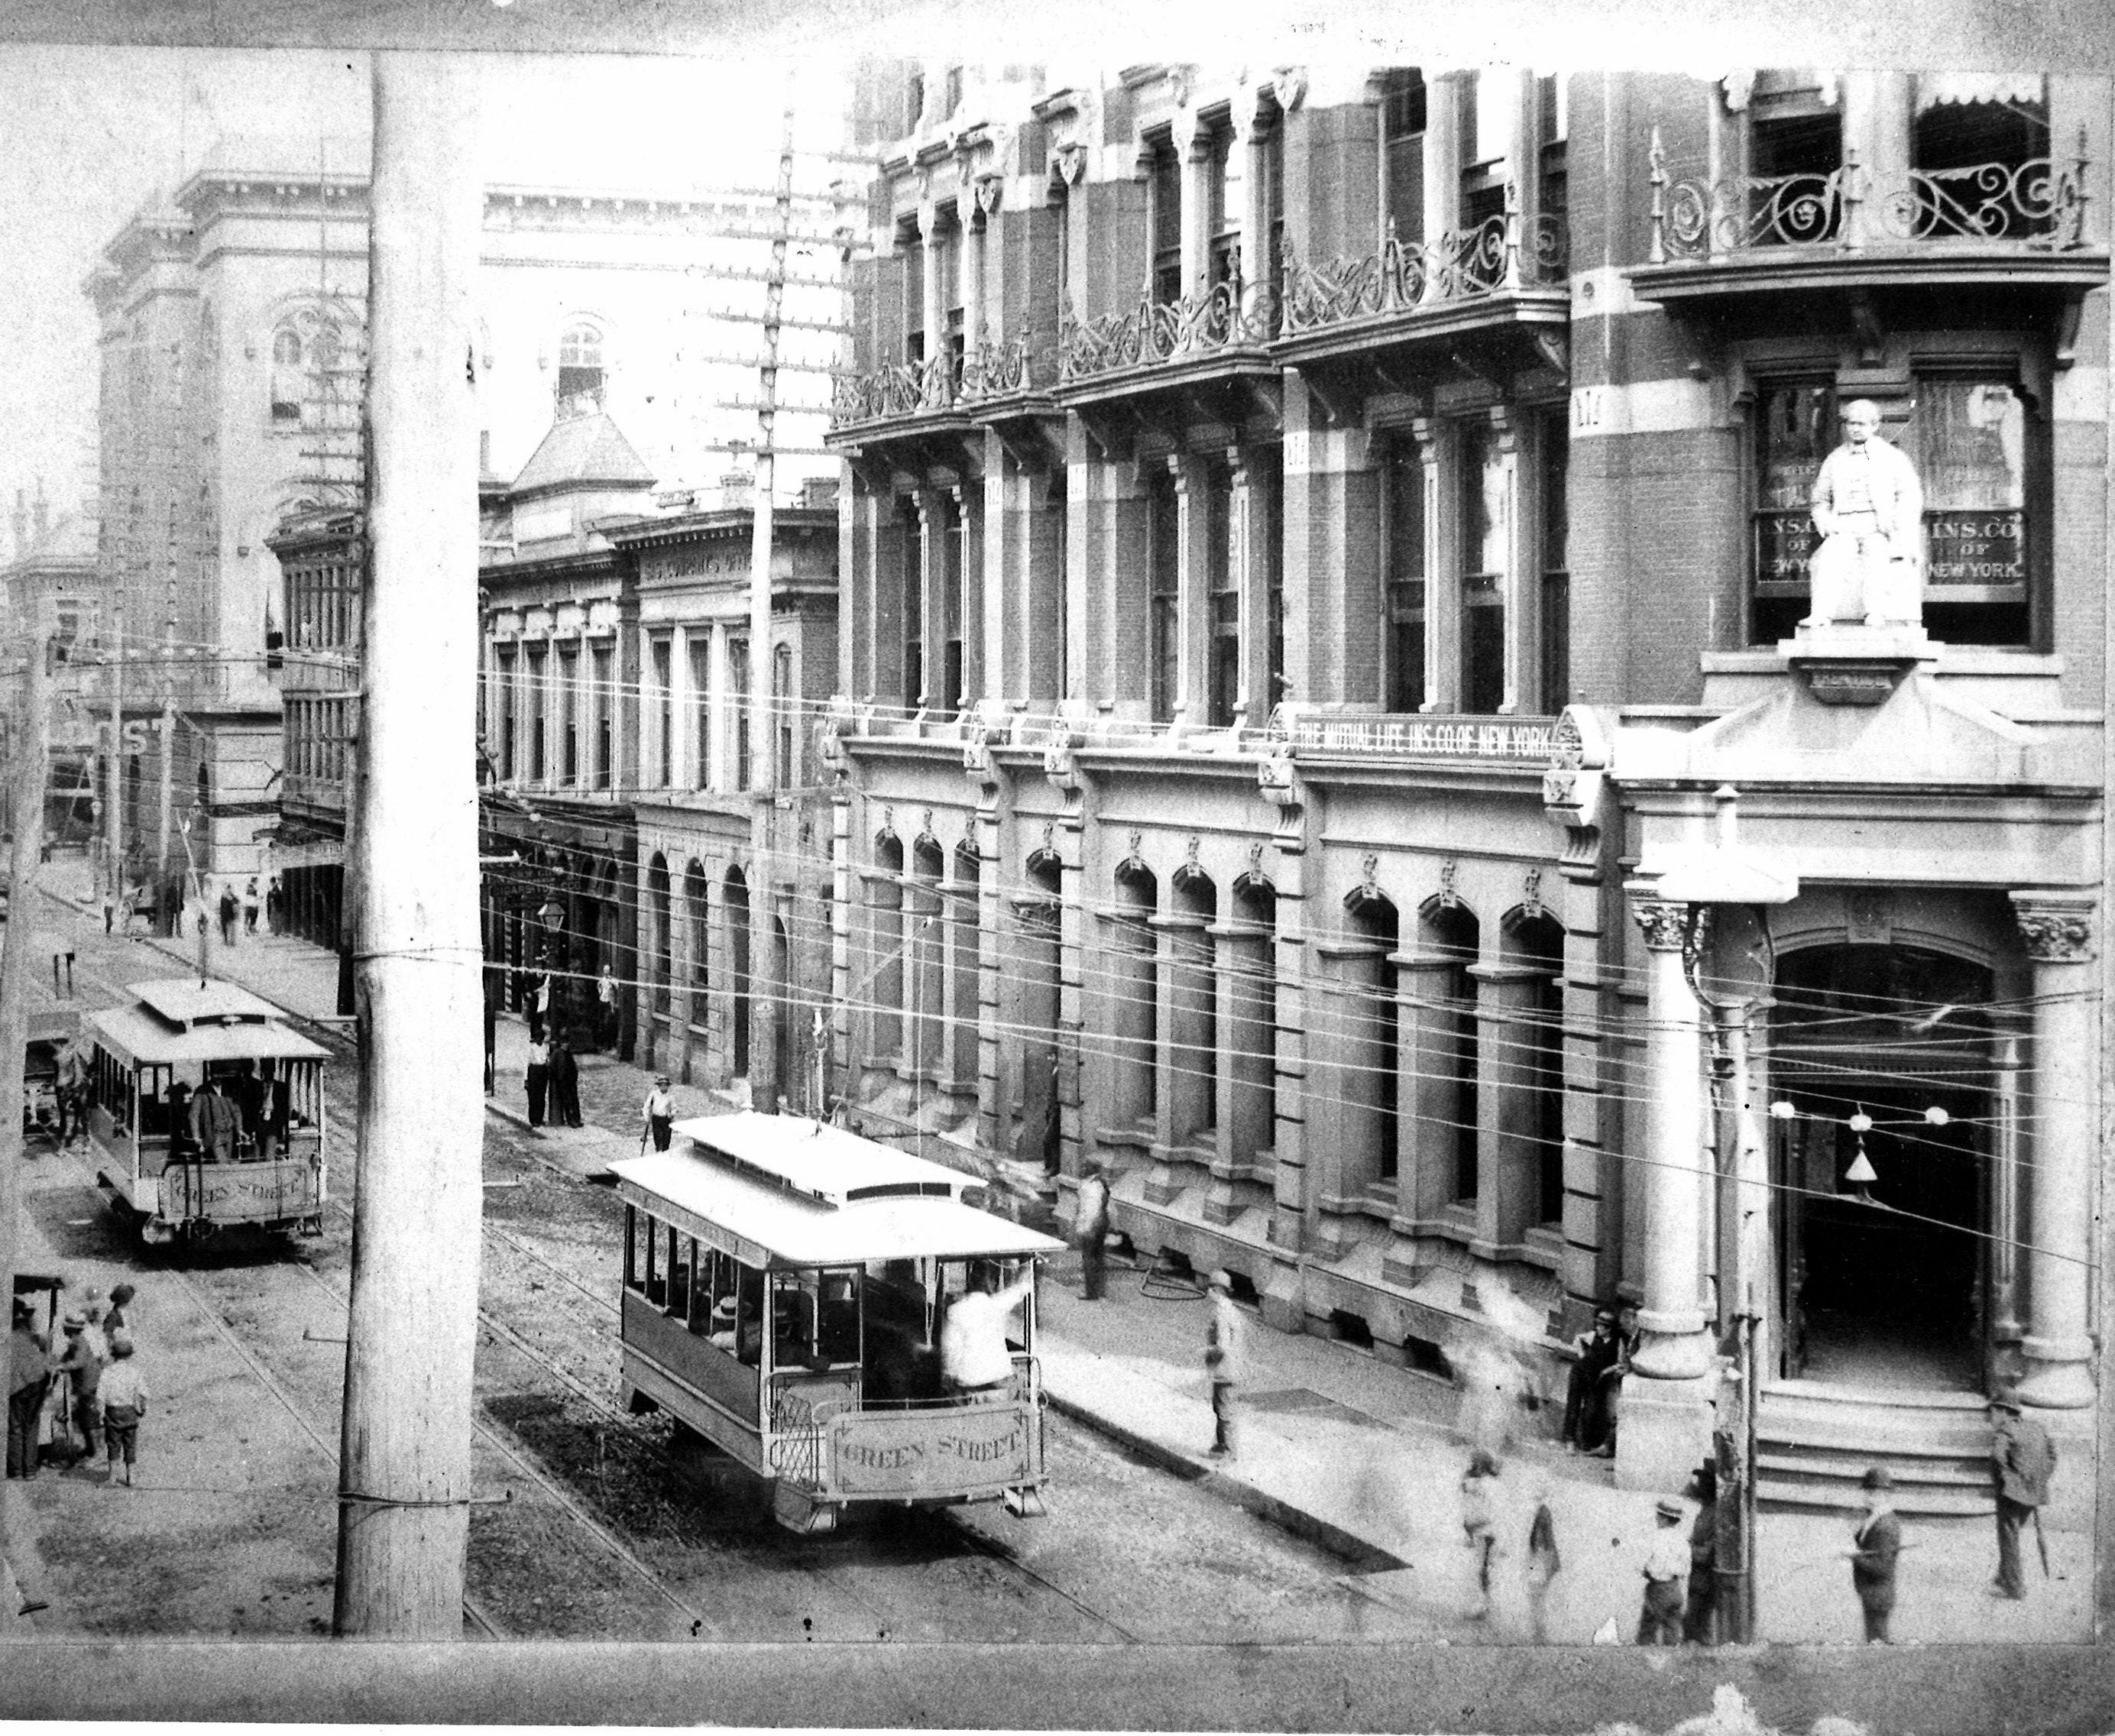 Old Courier Journal building, 4th and Green (now Liberty), undated